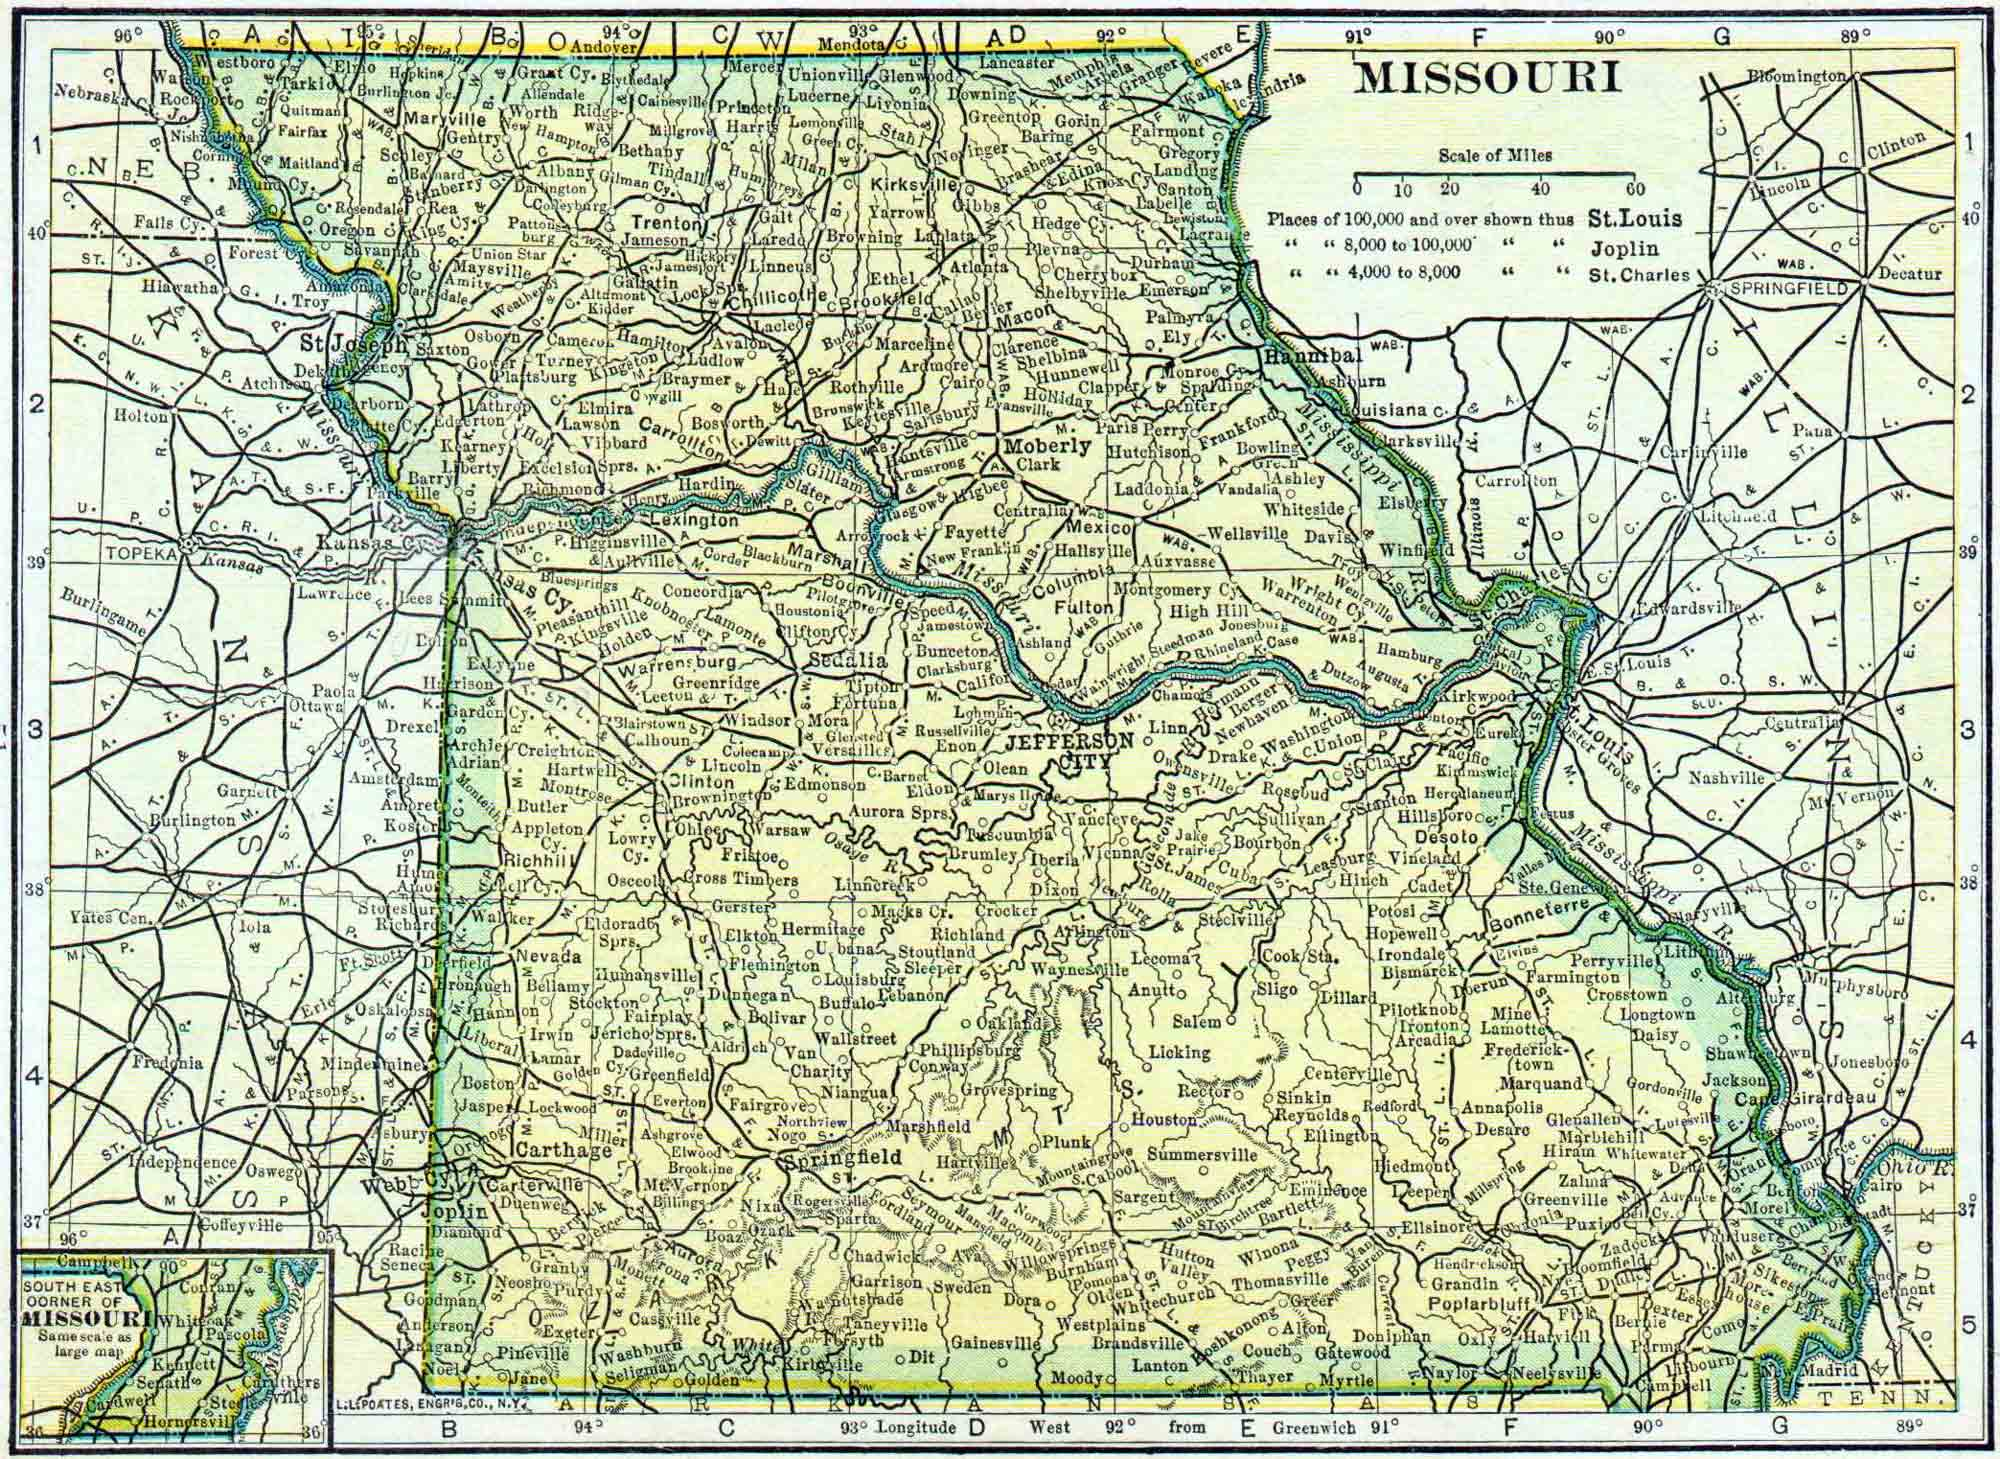 Missouri Genealogy - Free Missouri Genealogy | Access Genealogy